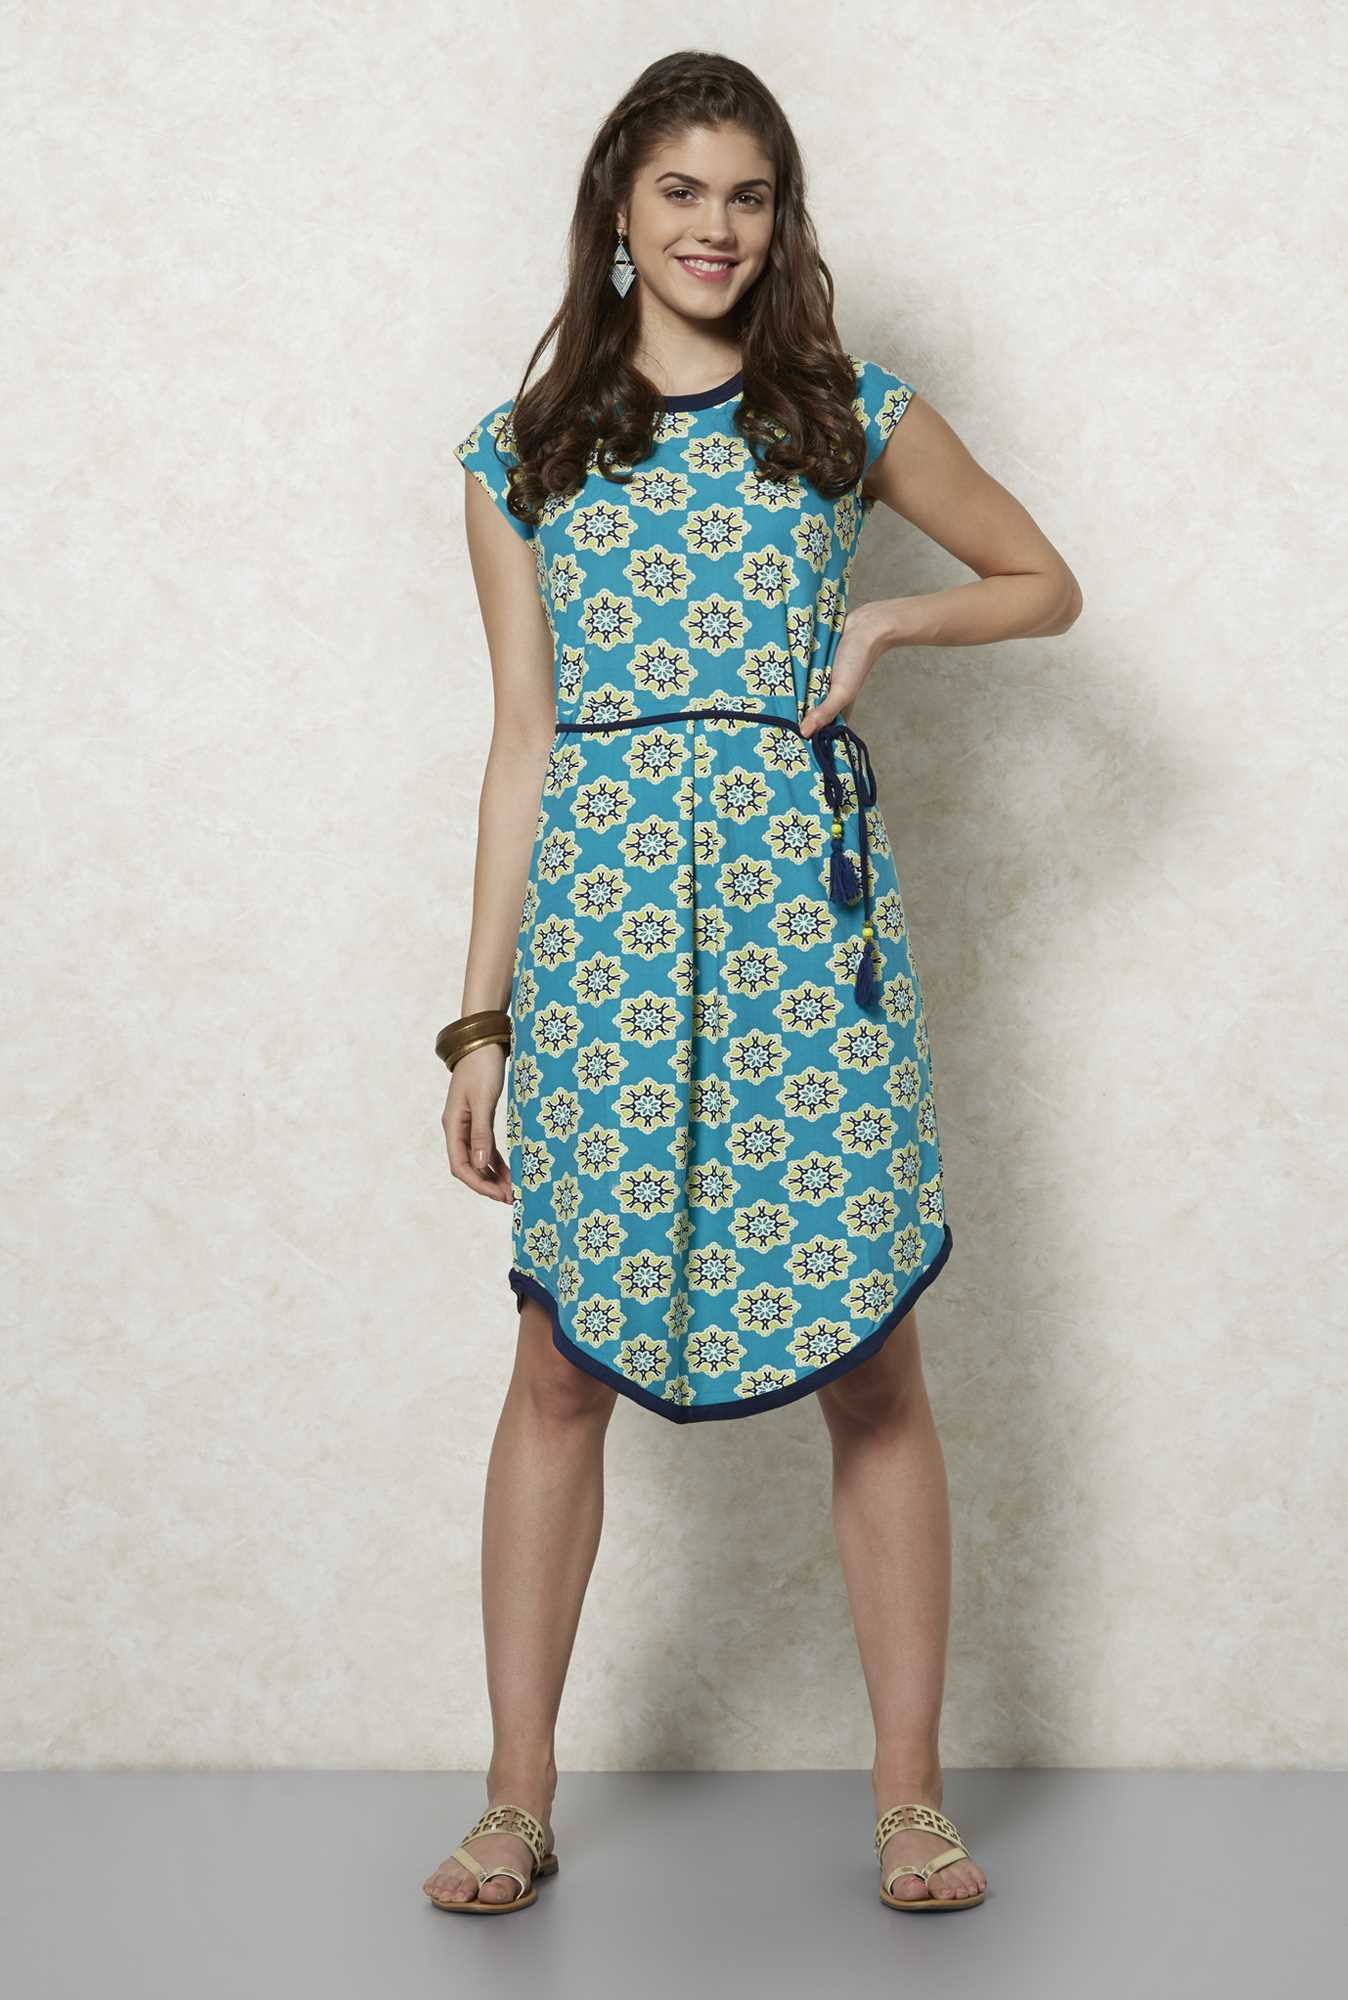 Fusion Beats Turquoise Floral Printed Dress